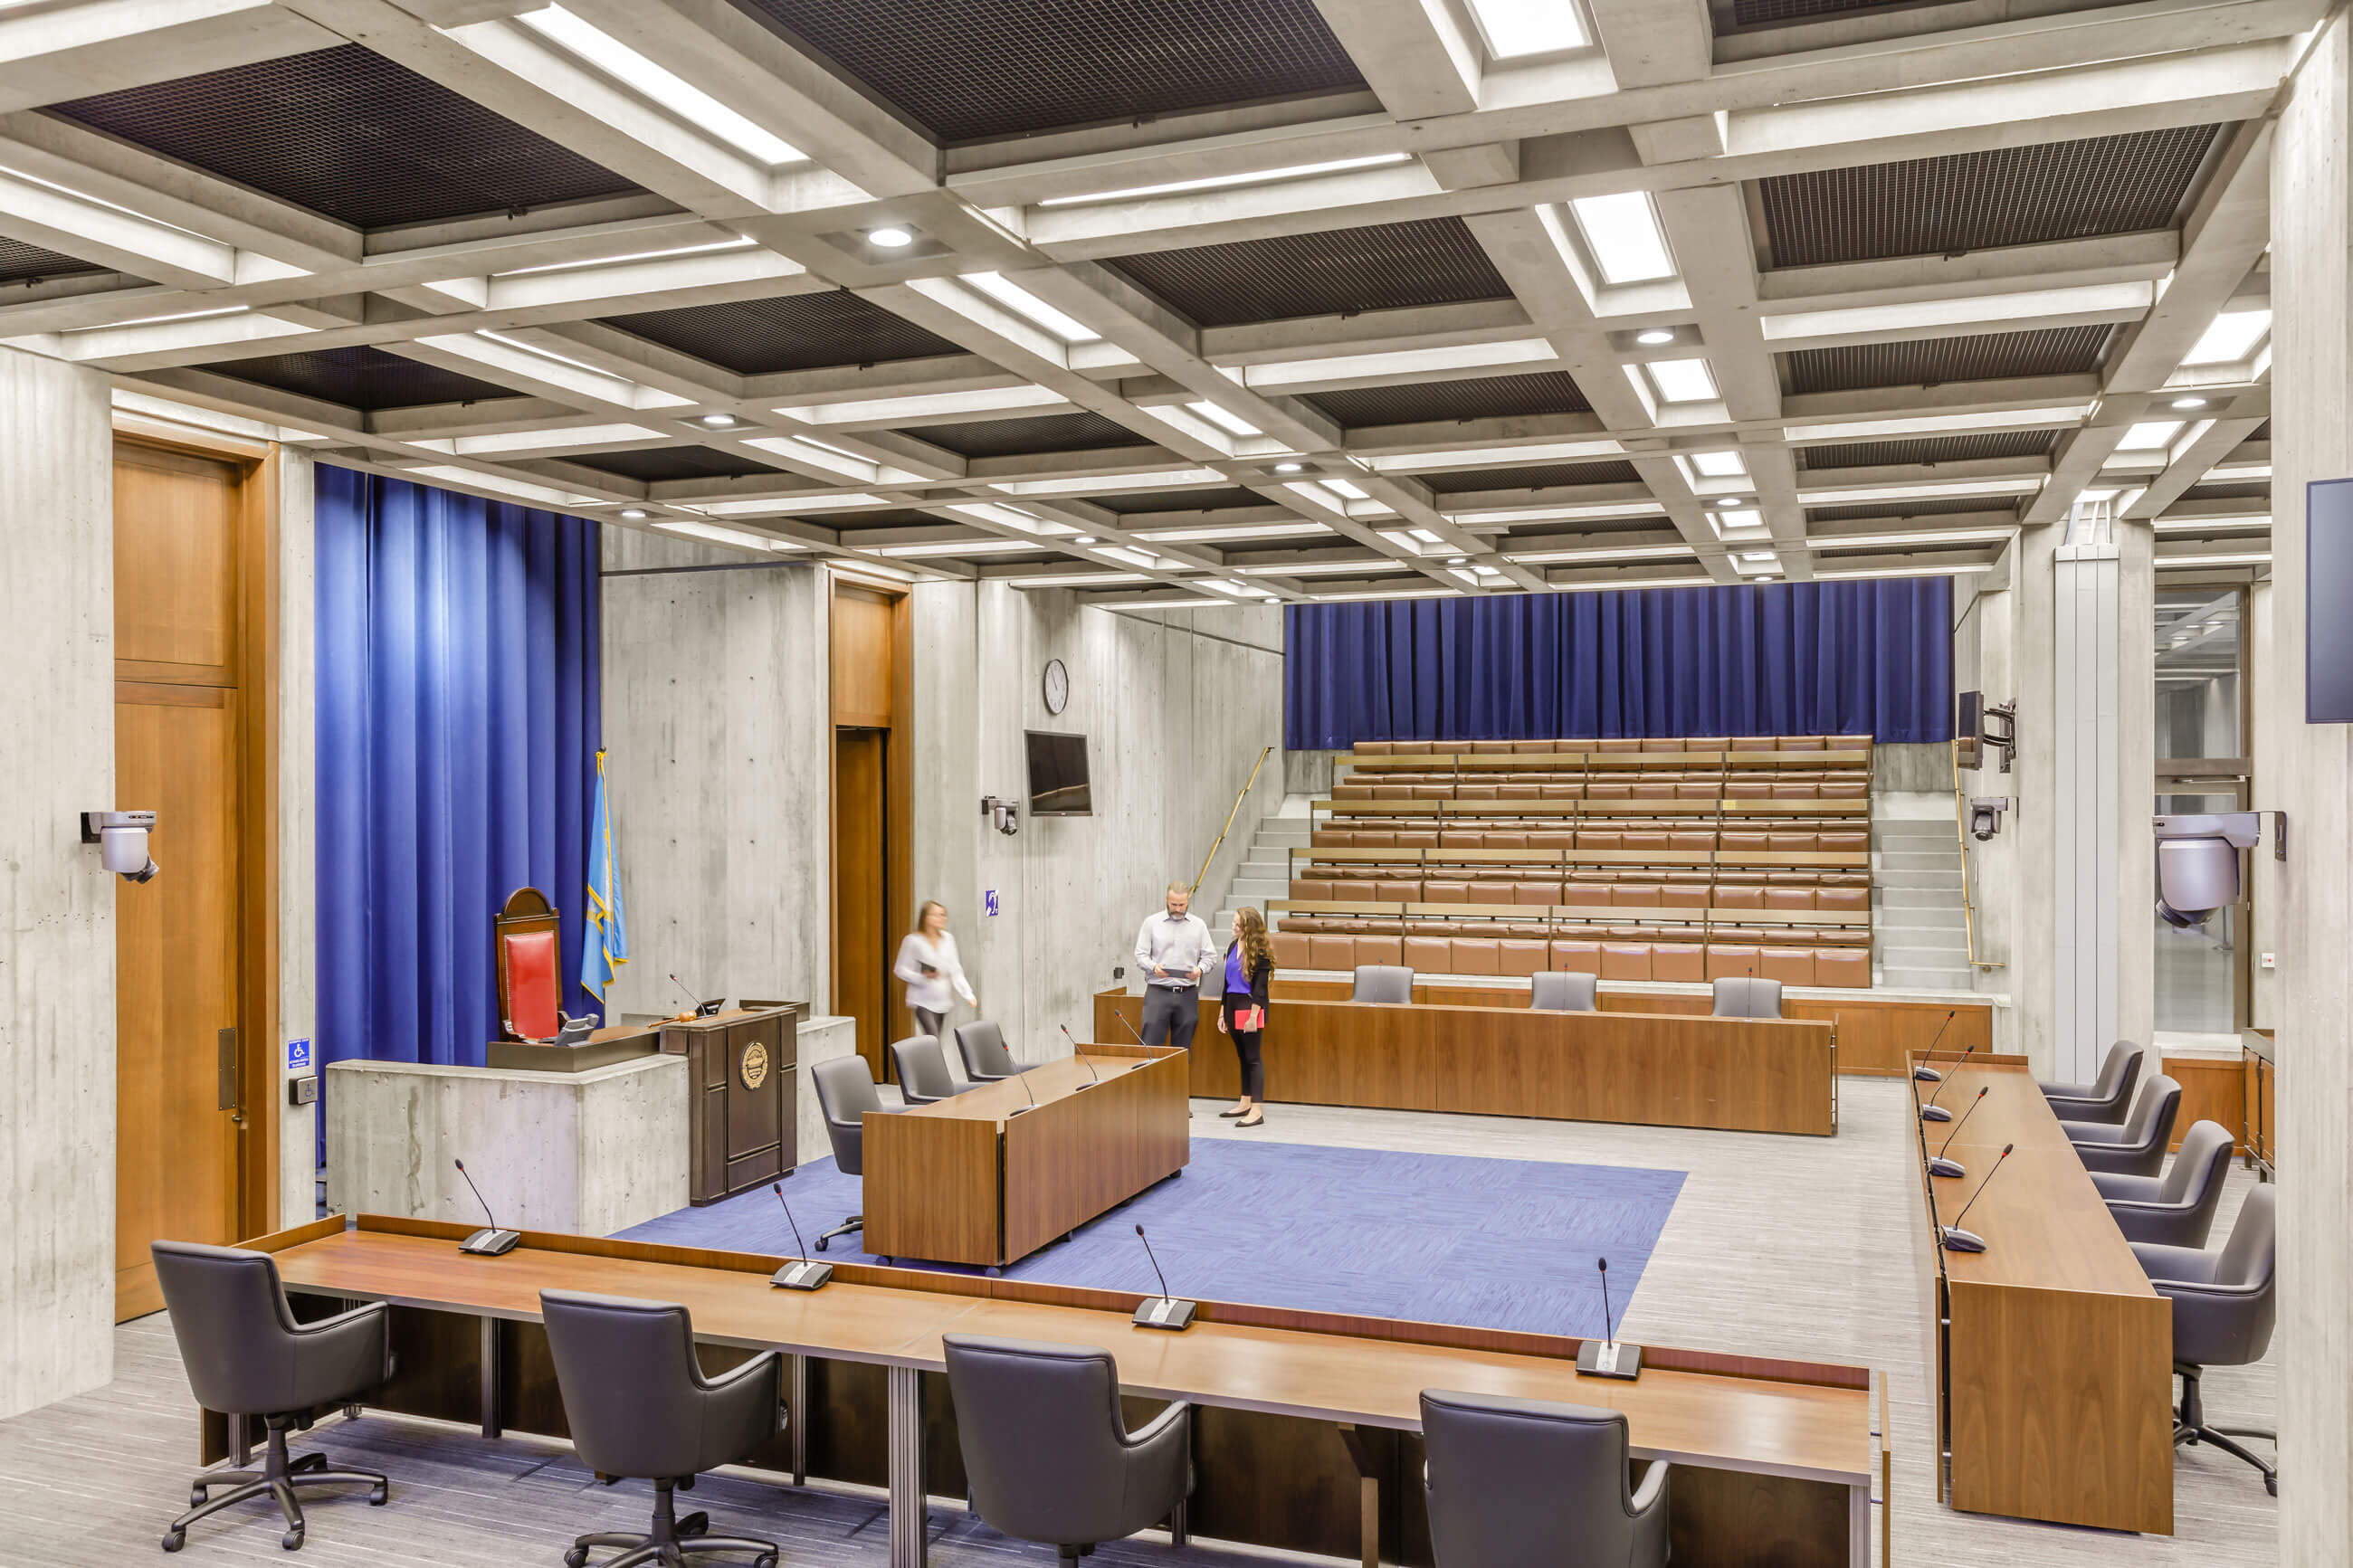 Interior view of Boston City Hall's Council Chamber, showing the accessibility improvements made by Finegold Alexander Architects, including the leveling off of the floors